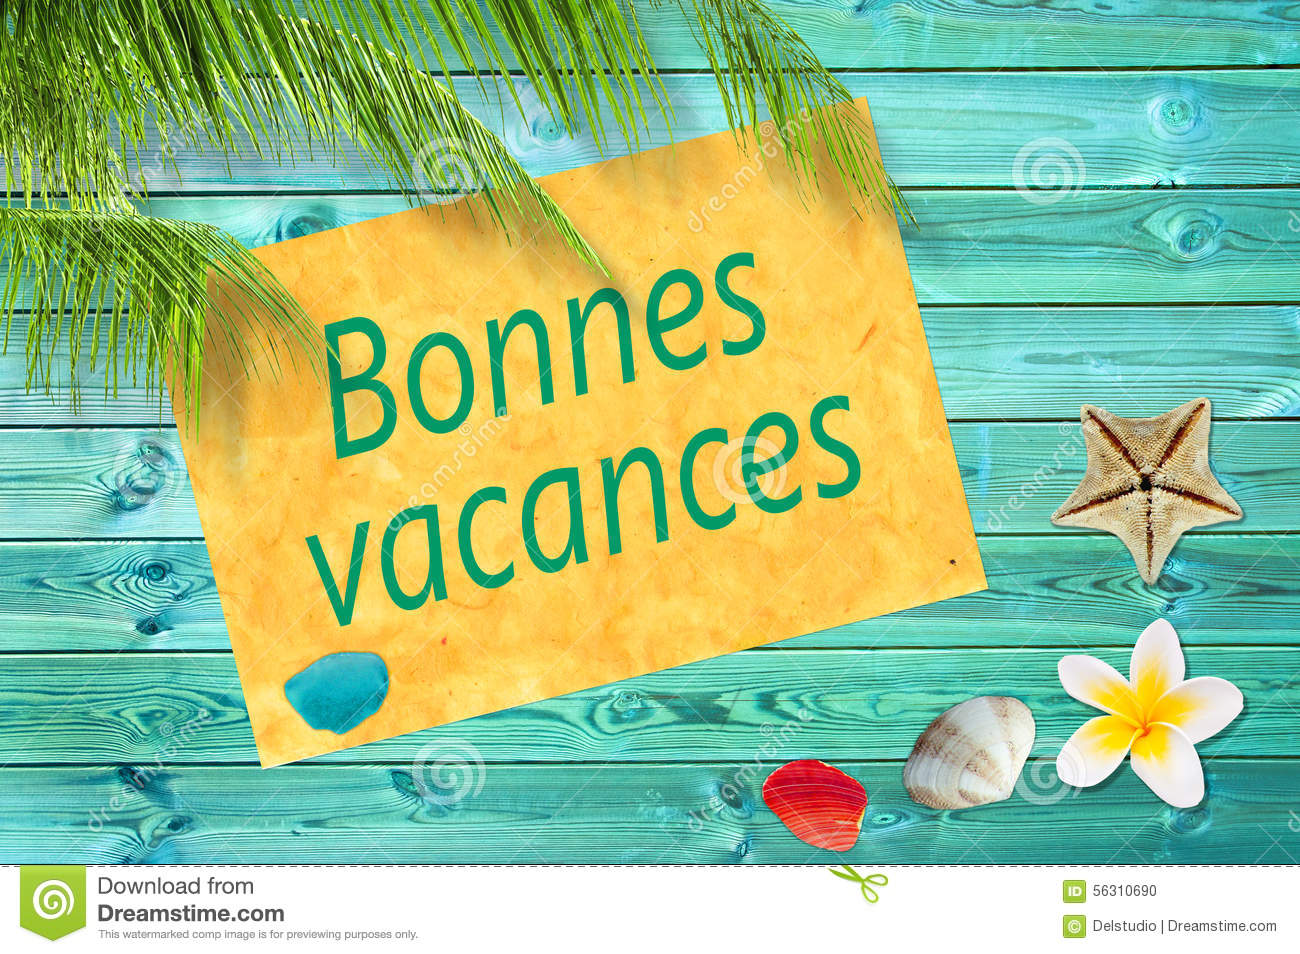 bonnes vacances  meaning happy summer  written on a paper seashells clipart png seashell clipart freeware black and white